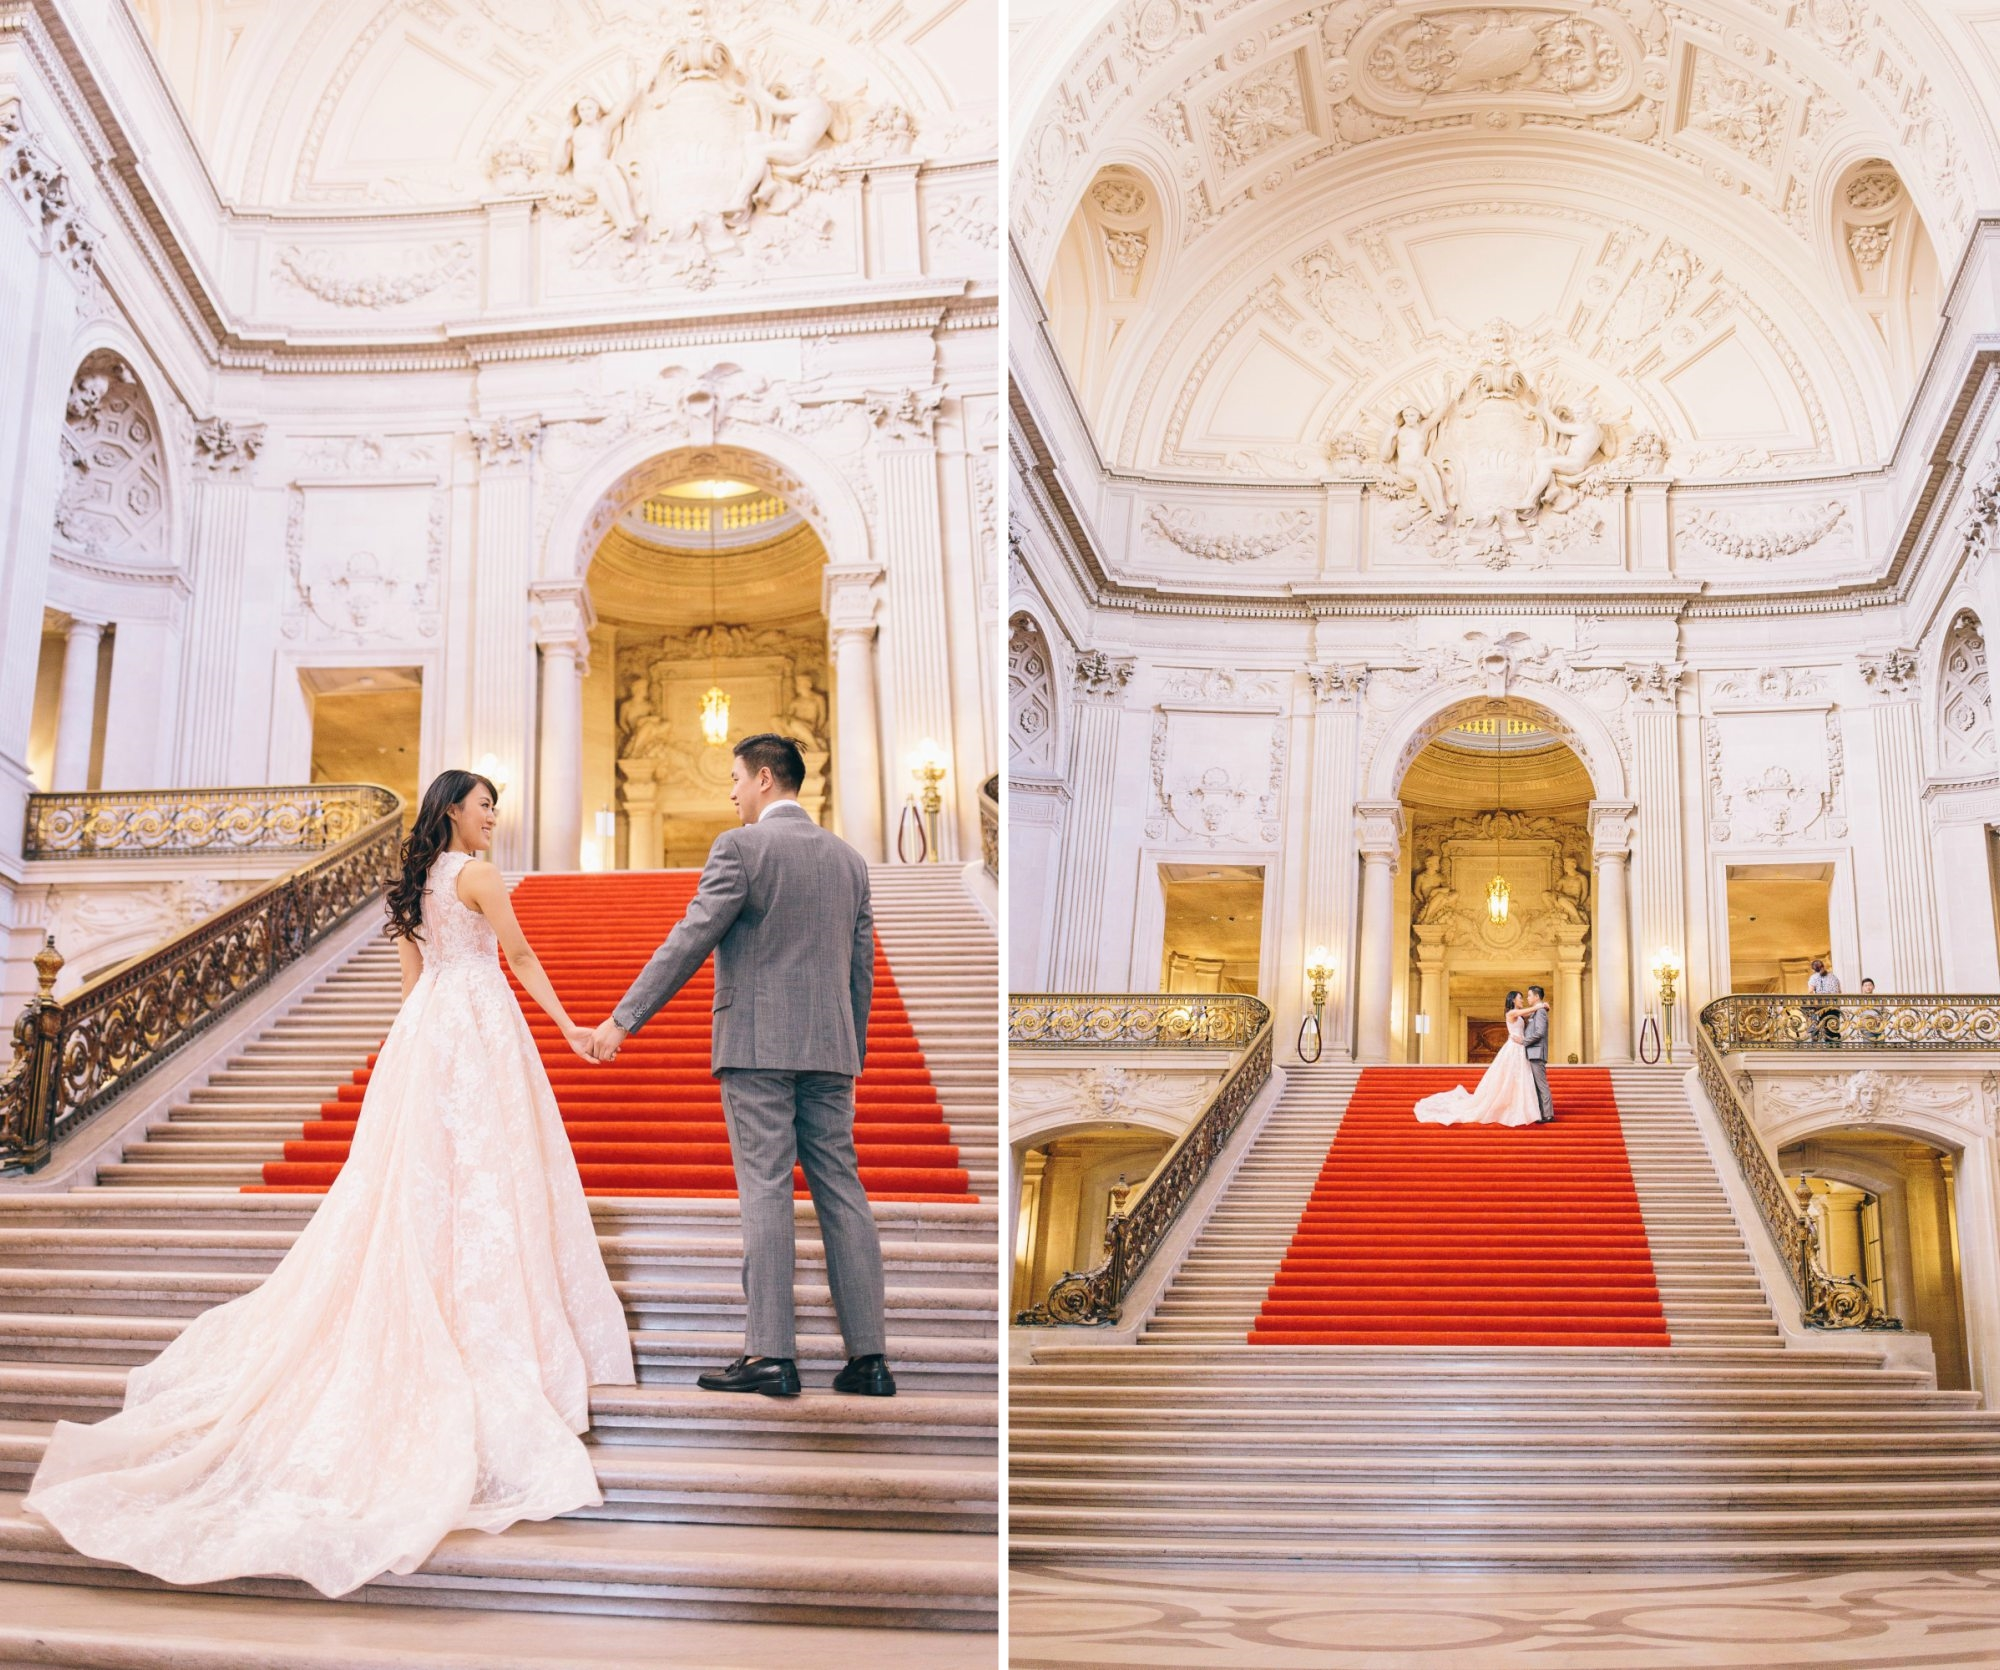 Pre-Wedding Photos in San Francisco by JBJ Pictures Pre-Wedding Photographer, Engagement Session and Wedding Photography in Napa, Sonoma, SF Bay Area (19).jpg